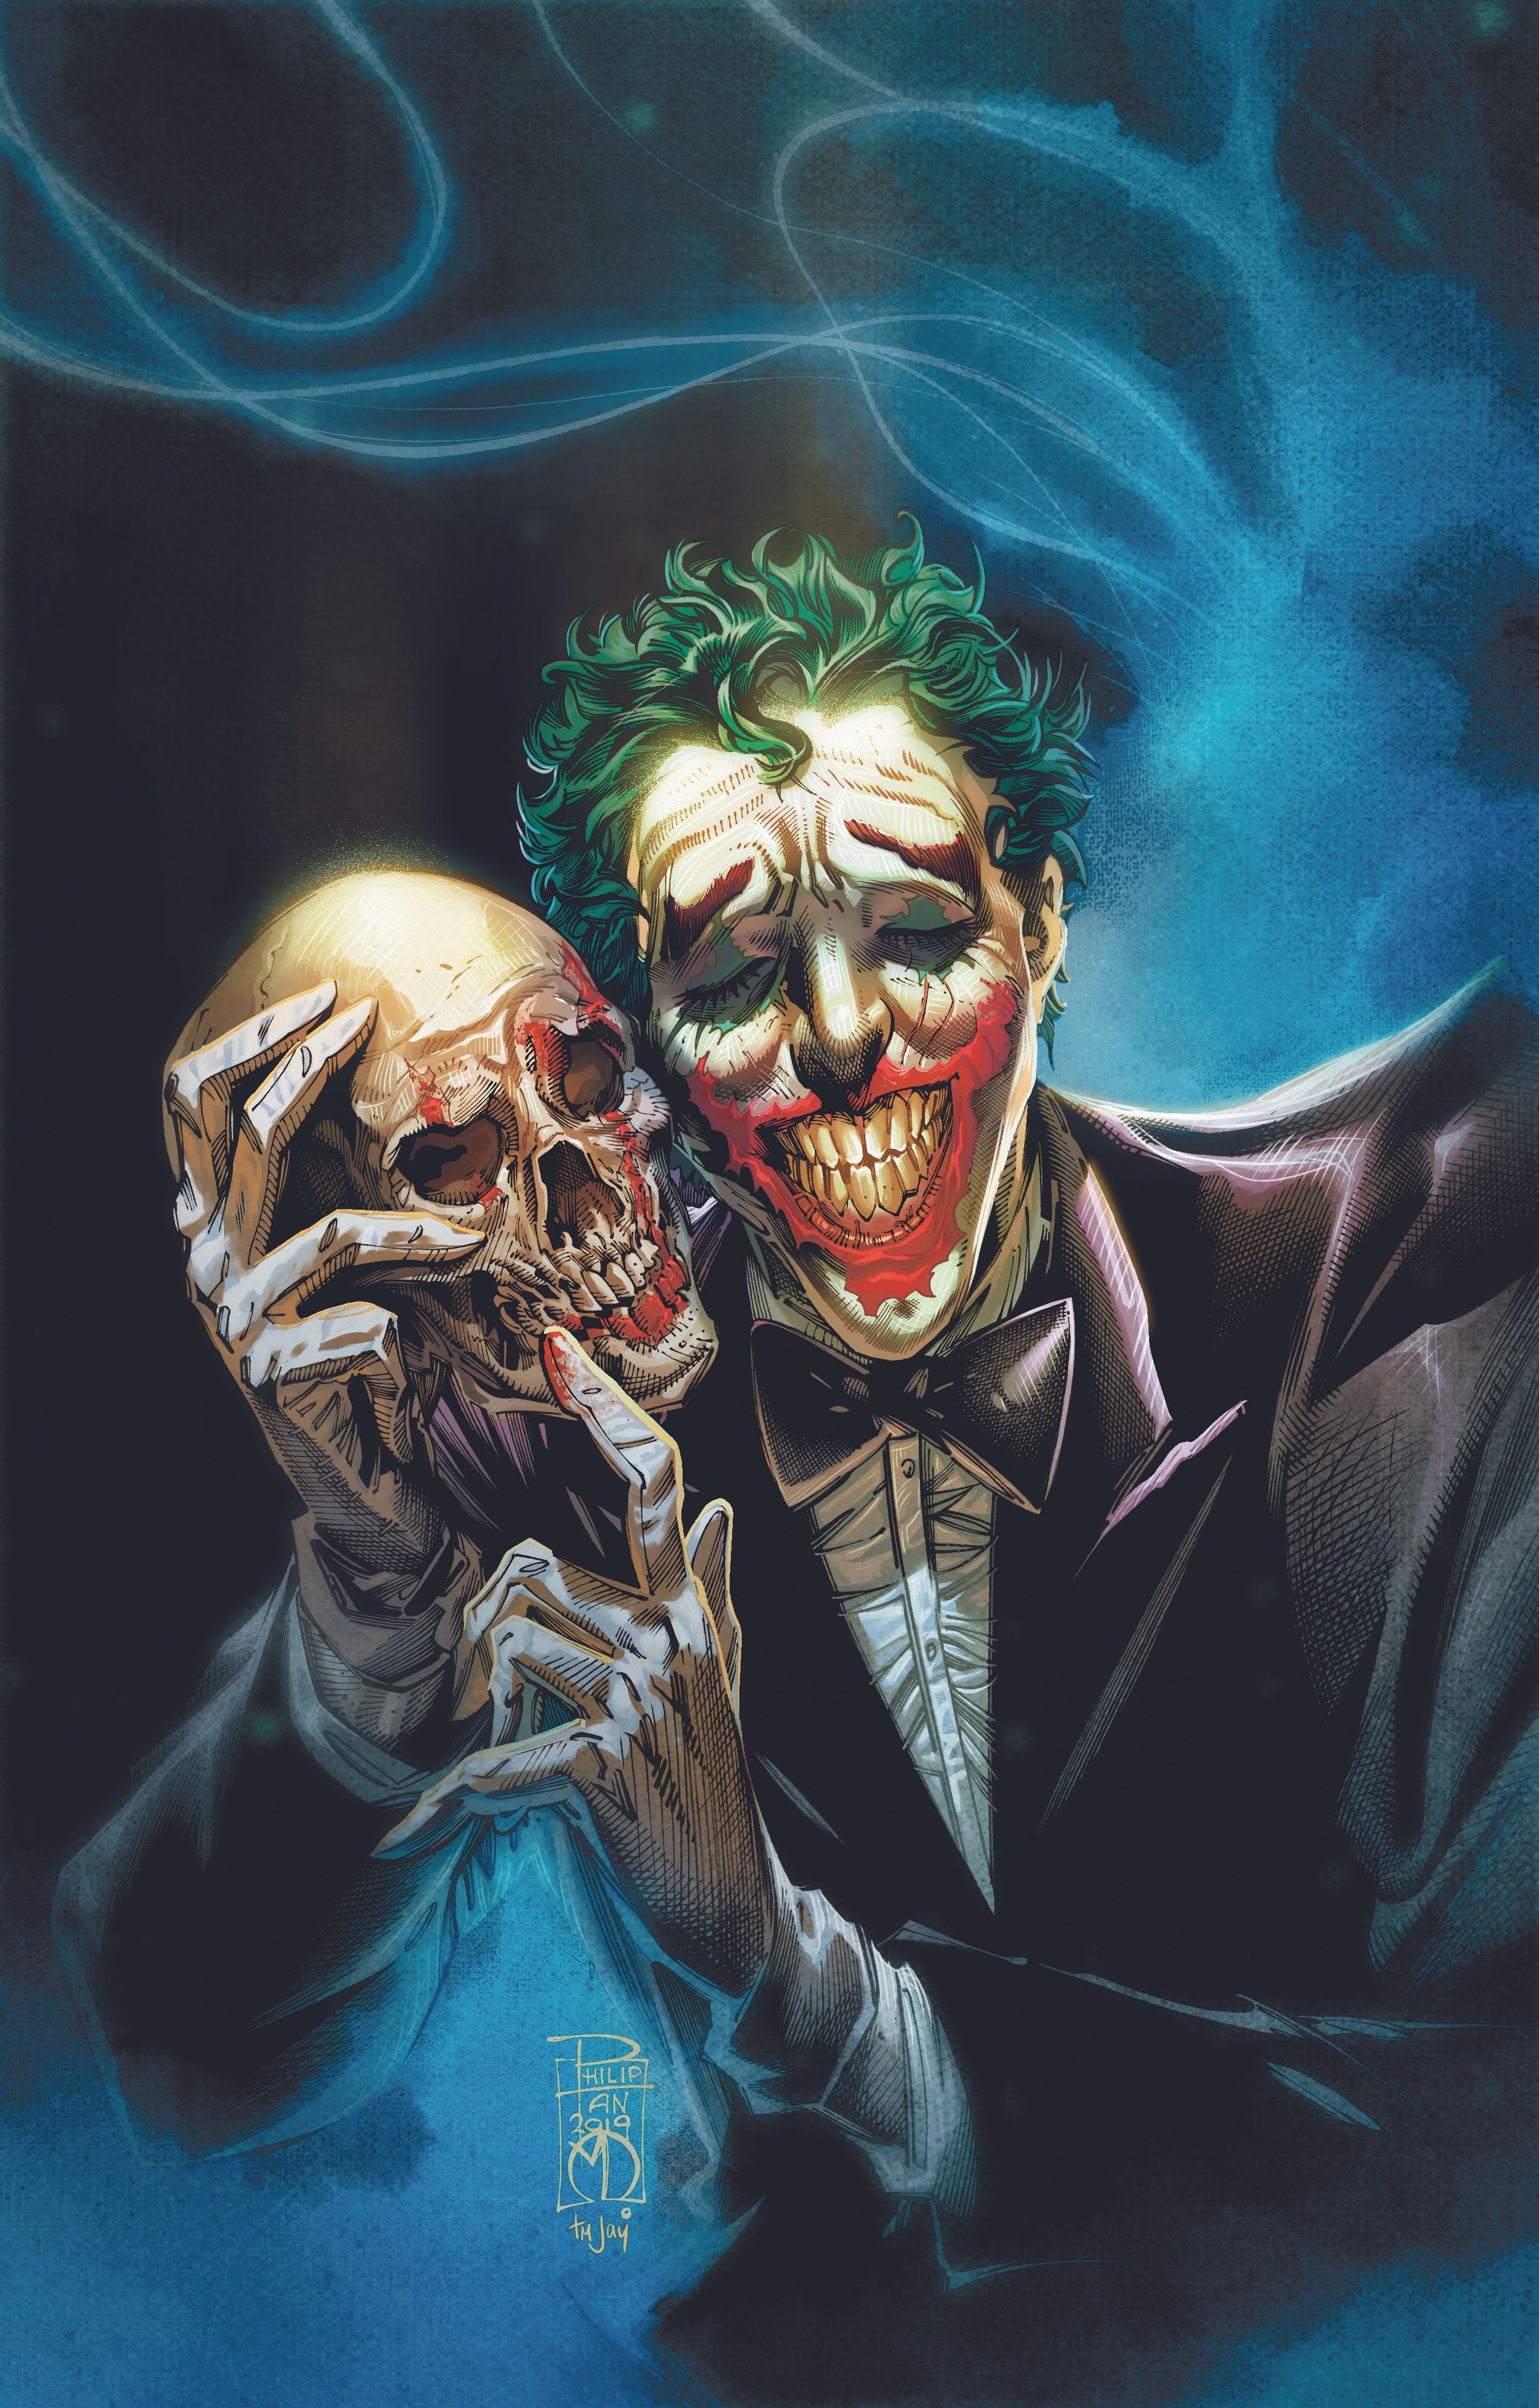 Review: DC's Year of the Villain: Joker #1 Provides a Lurid, Uneven Tale